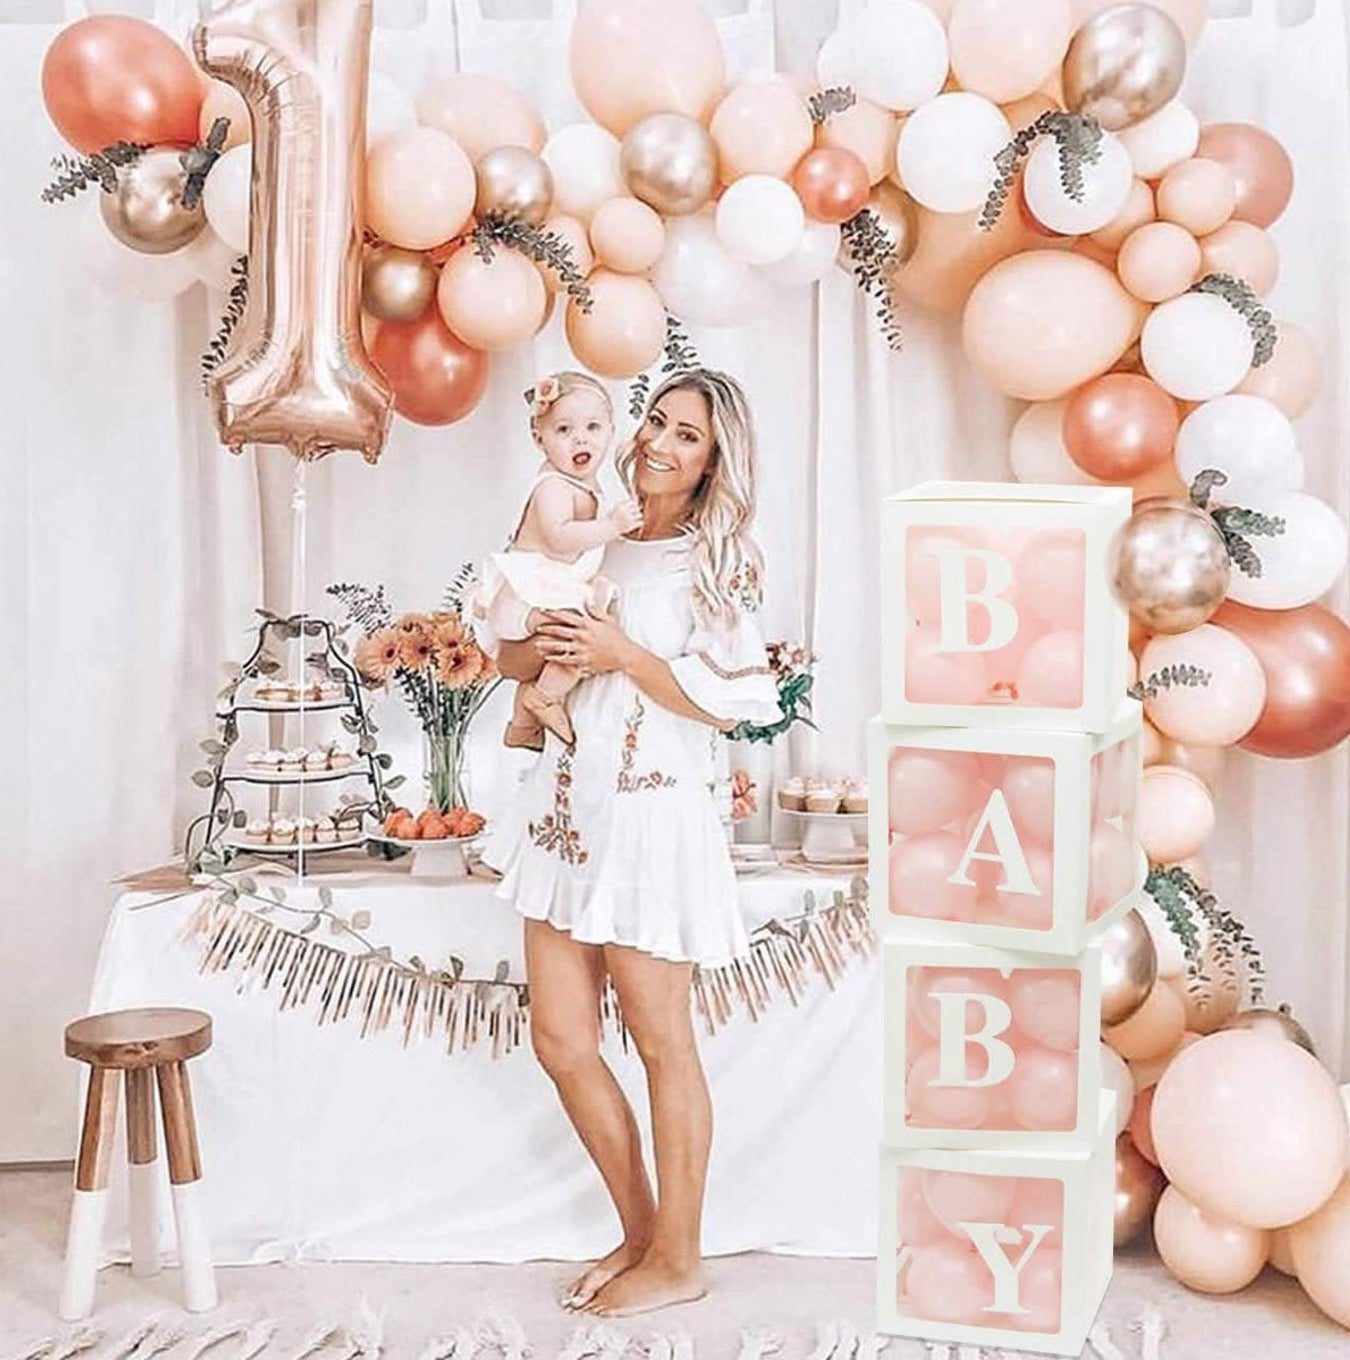 Baby shower decorations in pink and rose gold with balloons